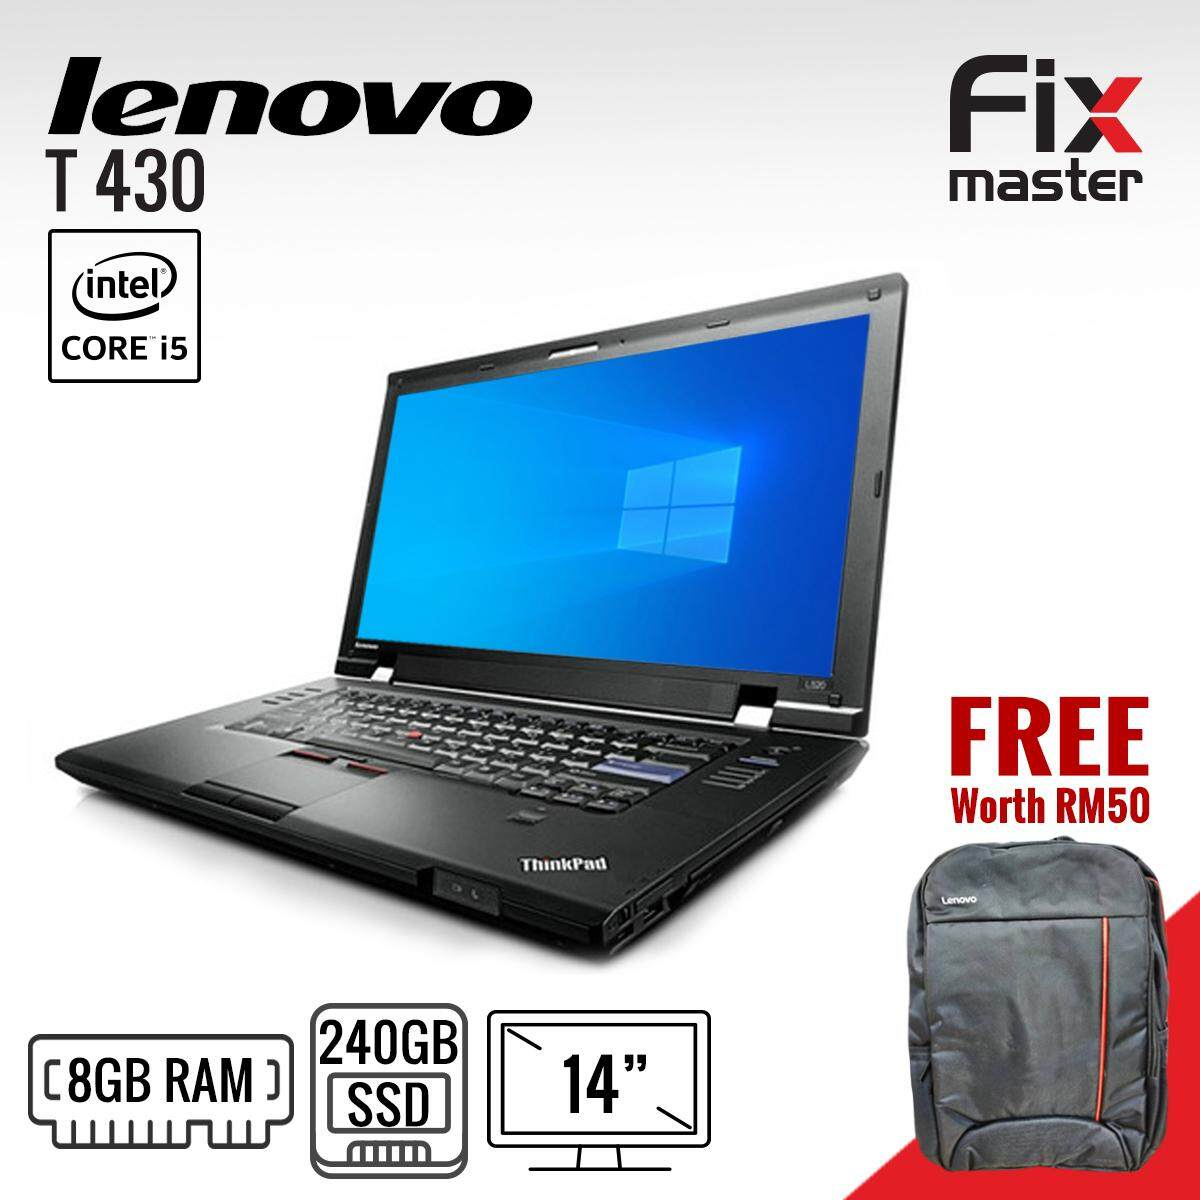 Lenovo ThinkPad T430 Laptop / Intel Core i5- 3rd generation / 14 inches / Brand new 120GB SSD / Brand New 4GB RAM / 12 months warranty (Refurbished) / Excitement like brand new Malaysia